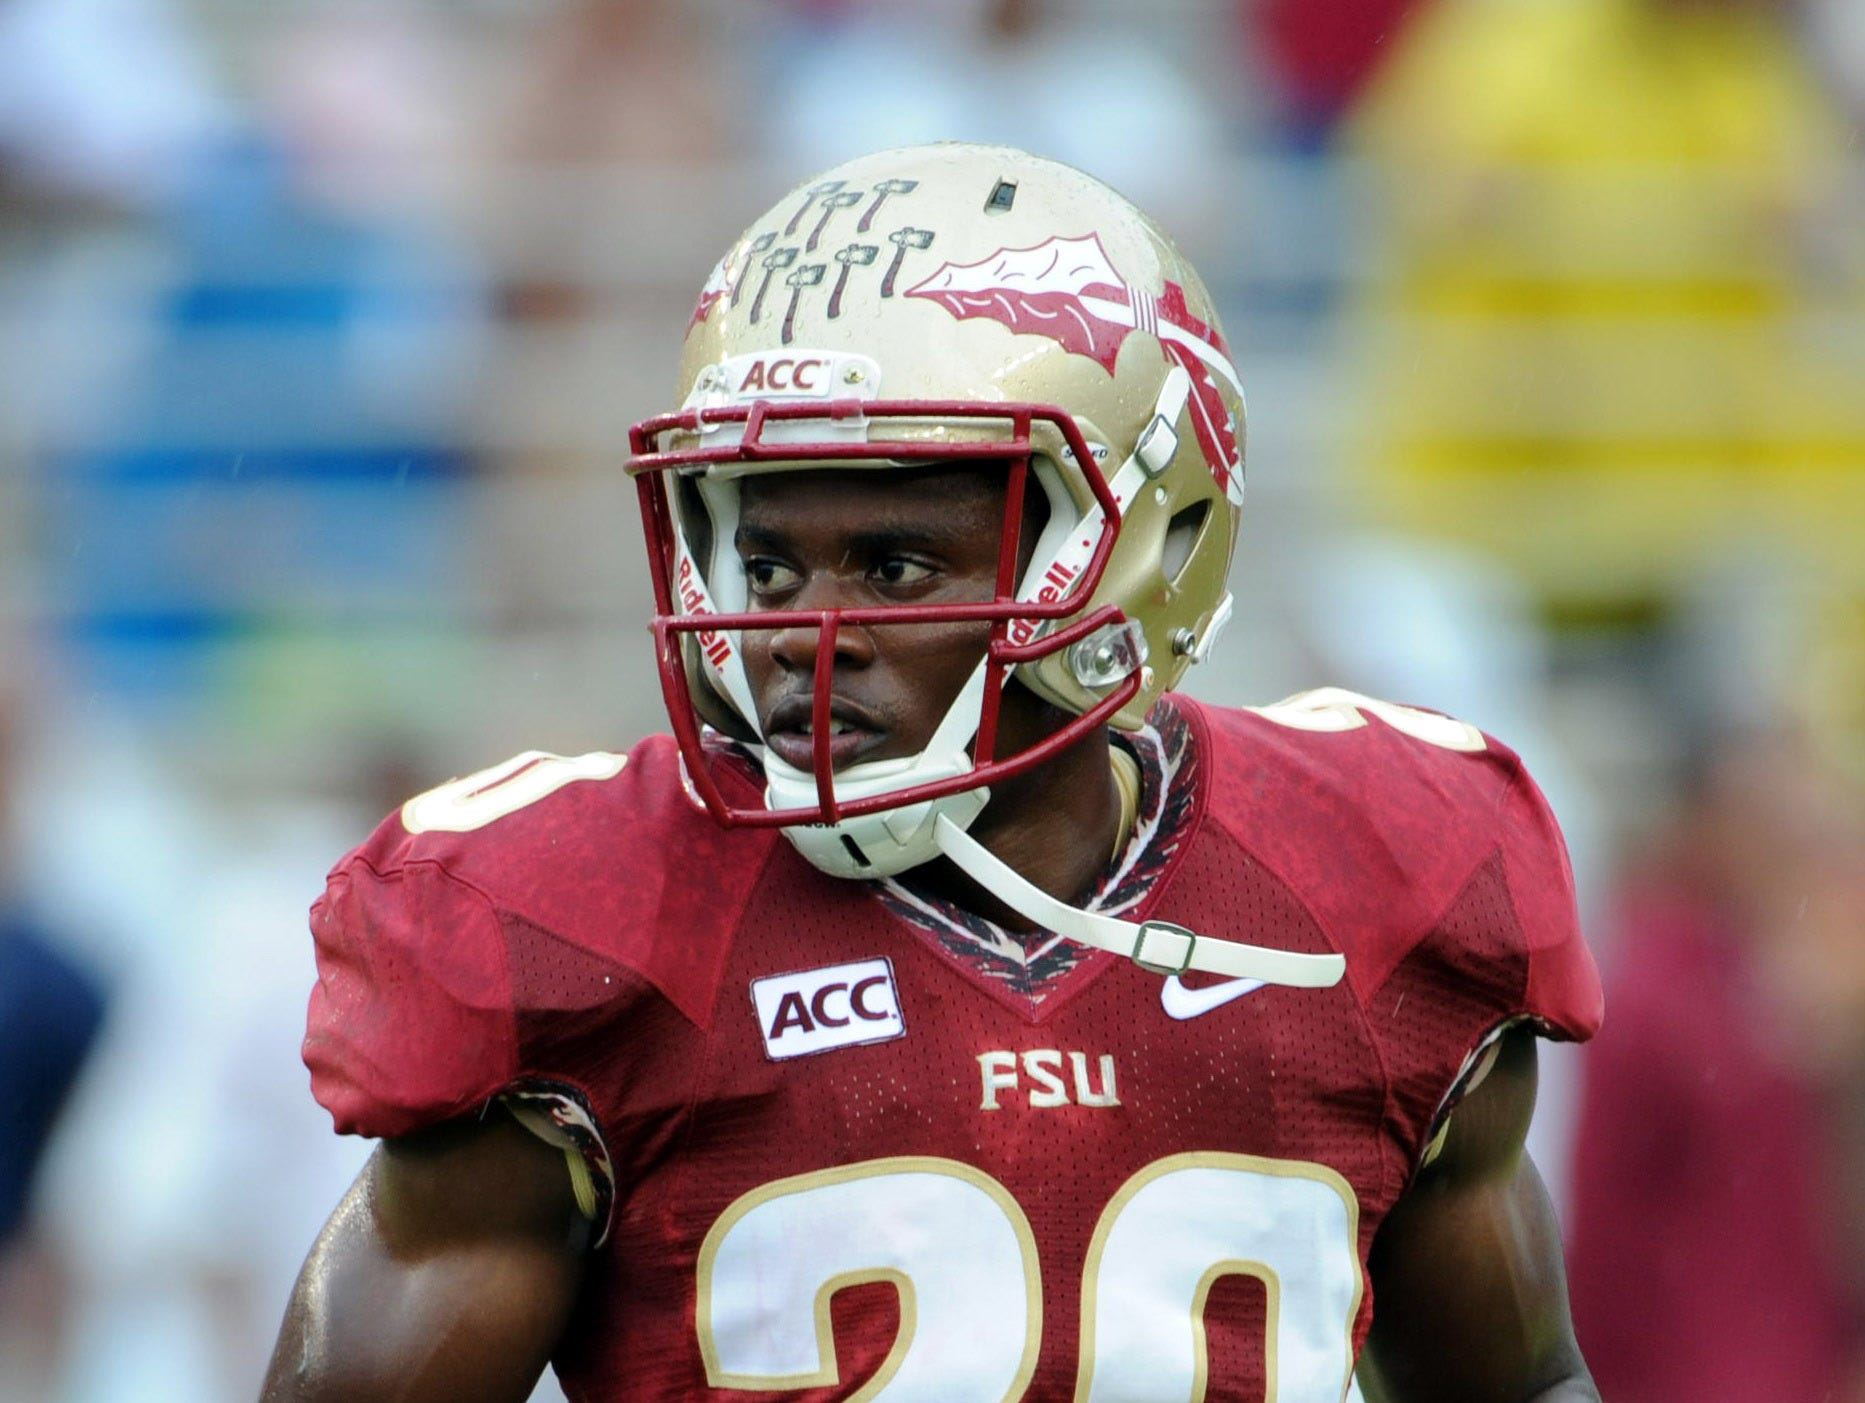 Sep 21, 2013; Tallahassee, FL, USA; Florida State Seminoles defensive back Lamarcus Joyner (20) before the start of the game against the Bethune-Cookman Wildcats at Doak Campbell Stadium. Mandatory Credit: Melina Vastola-USA TODAY Sports